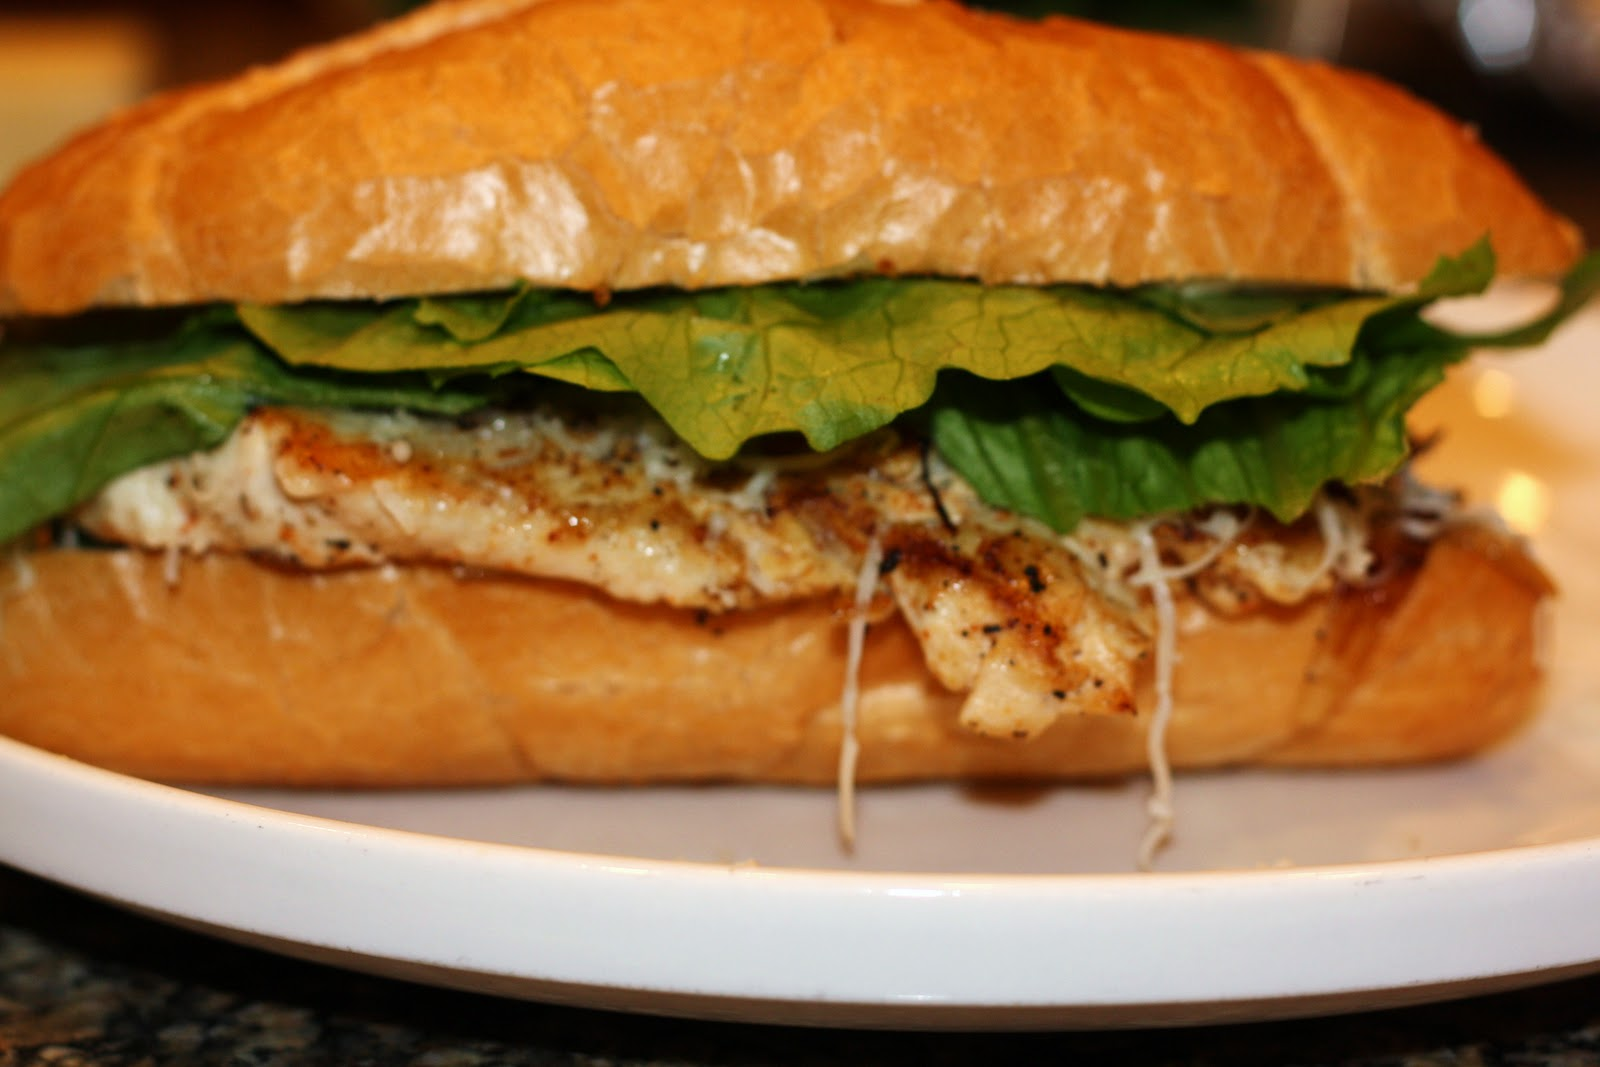 ... ?: chicken sandwiches with white onions and peppers... 20 minutes